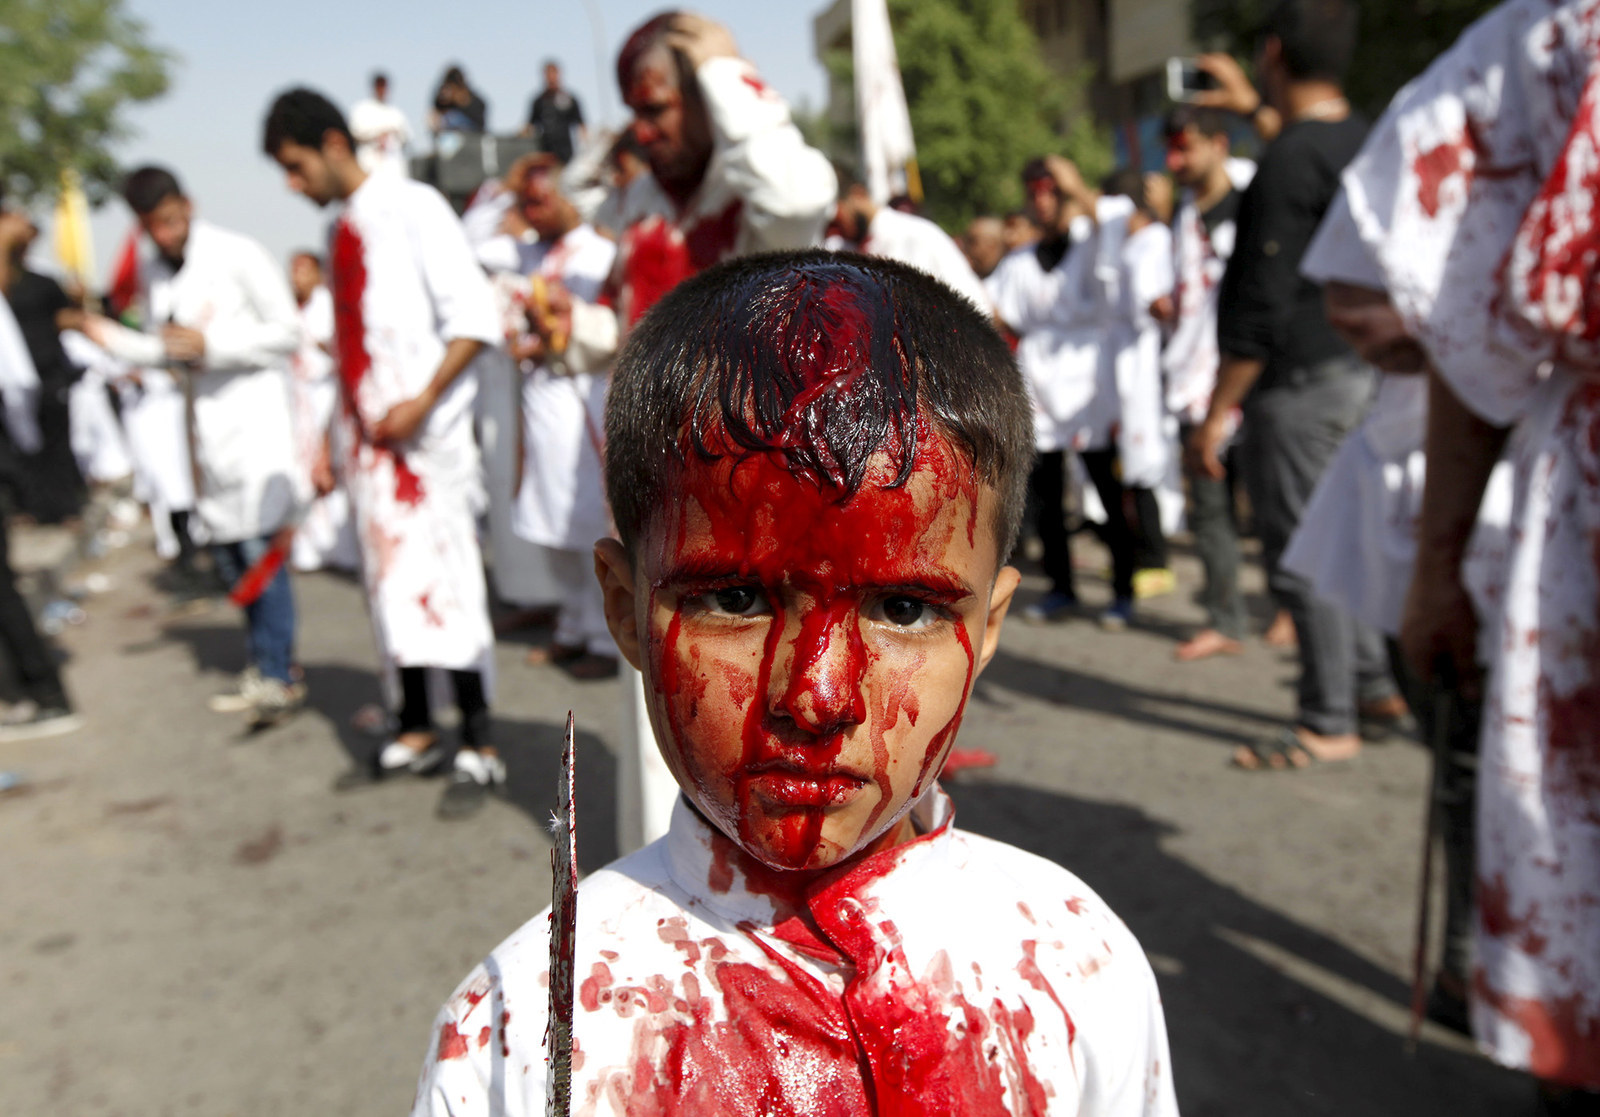 70 Of The Most Touching Photos Taken In 2015 - Iraq Shi'ite Muslims tap themselves with knives and razors to celebrate Ashura in Baghdad. The festival commemorates the death of Imam Hussein, grandson of Muhammad.